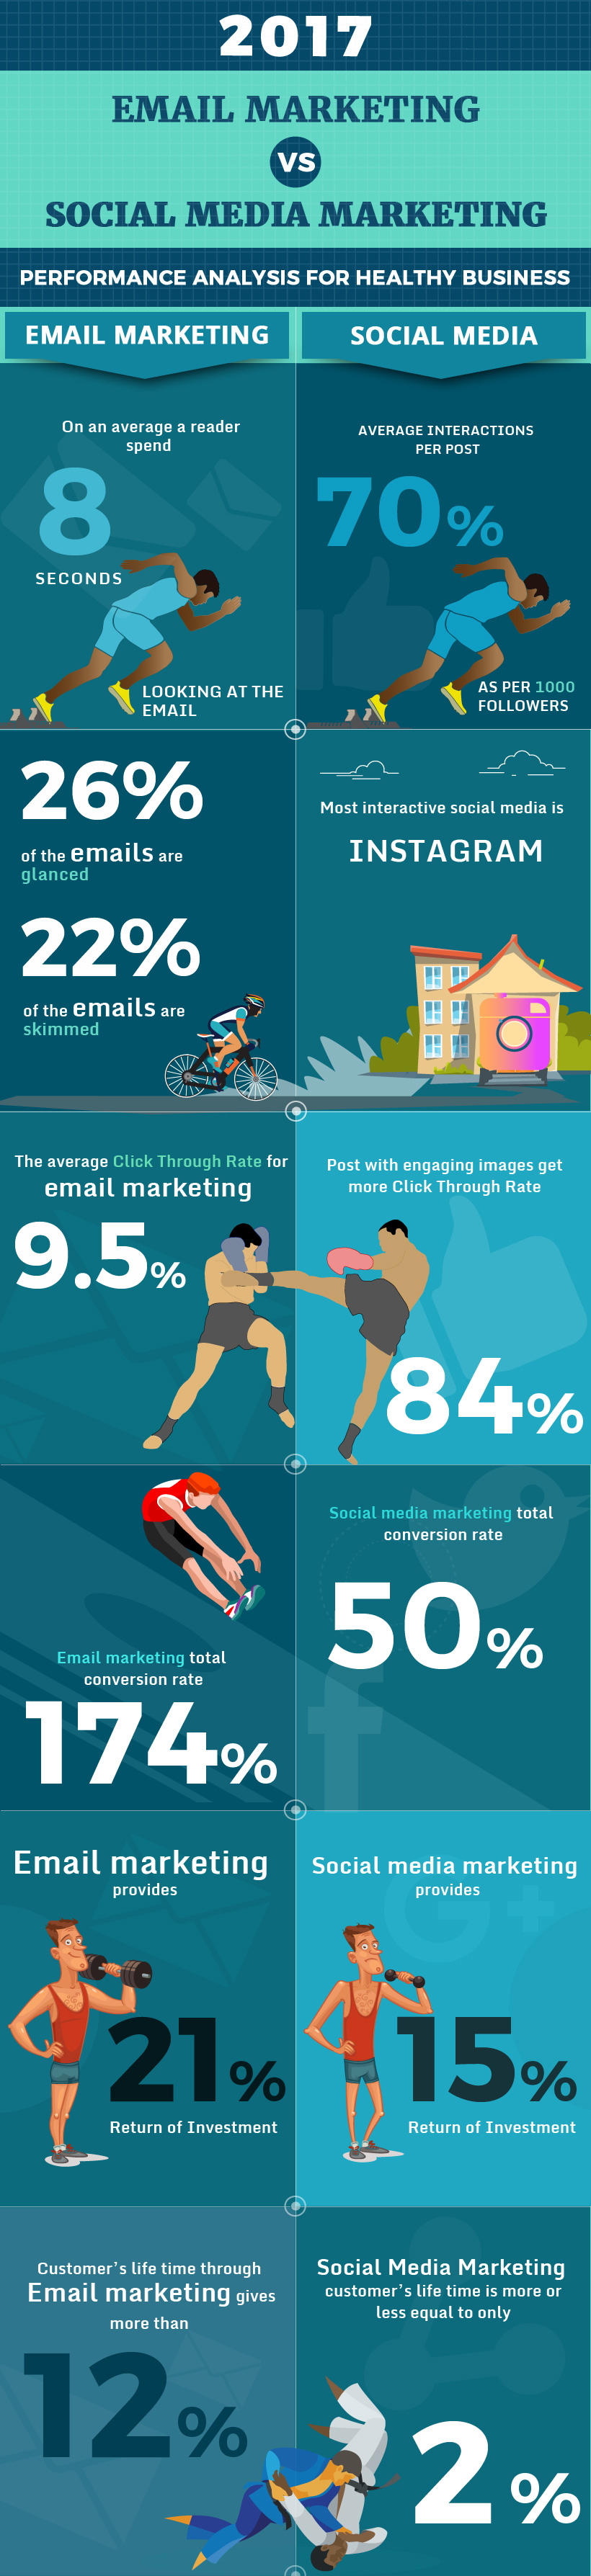 email-marketing-vs-social-media-marketing